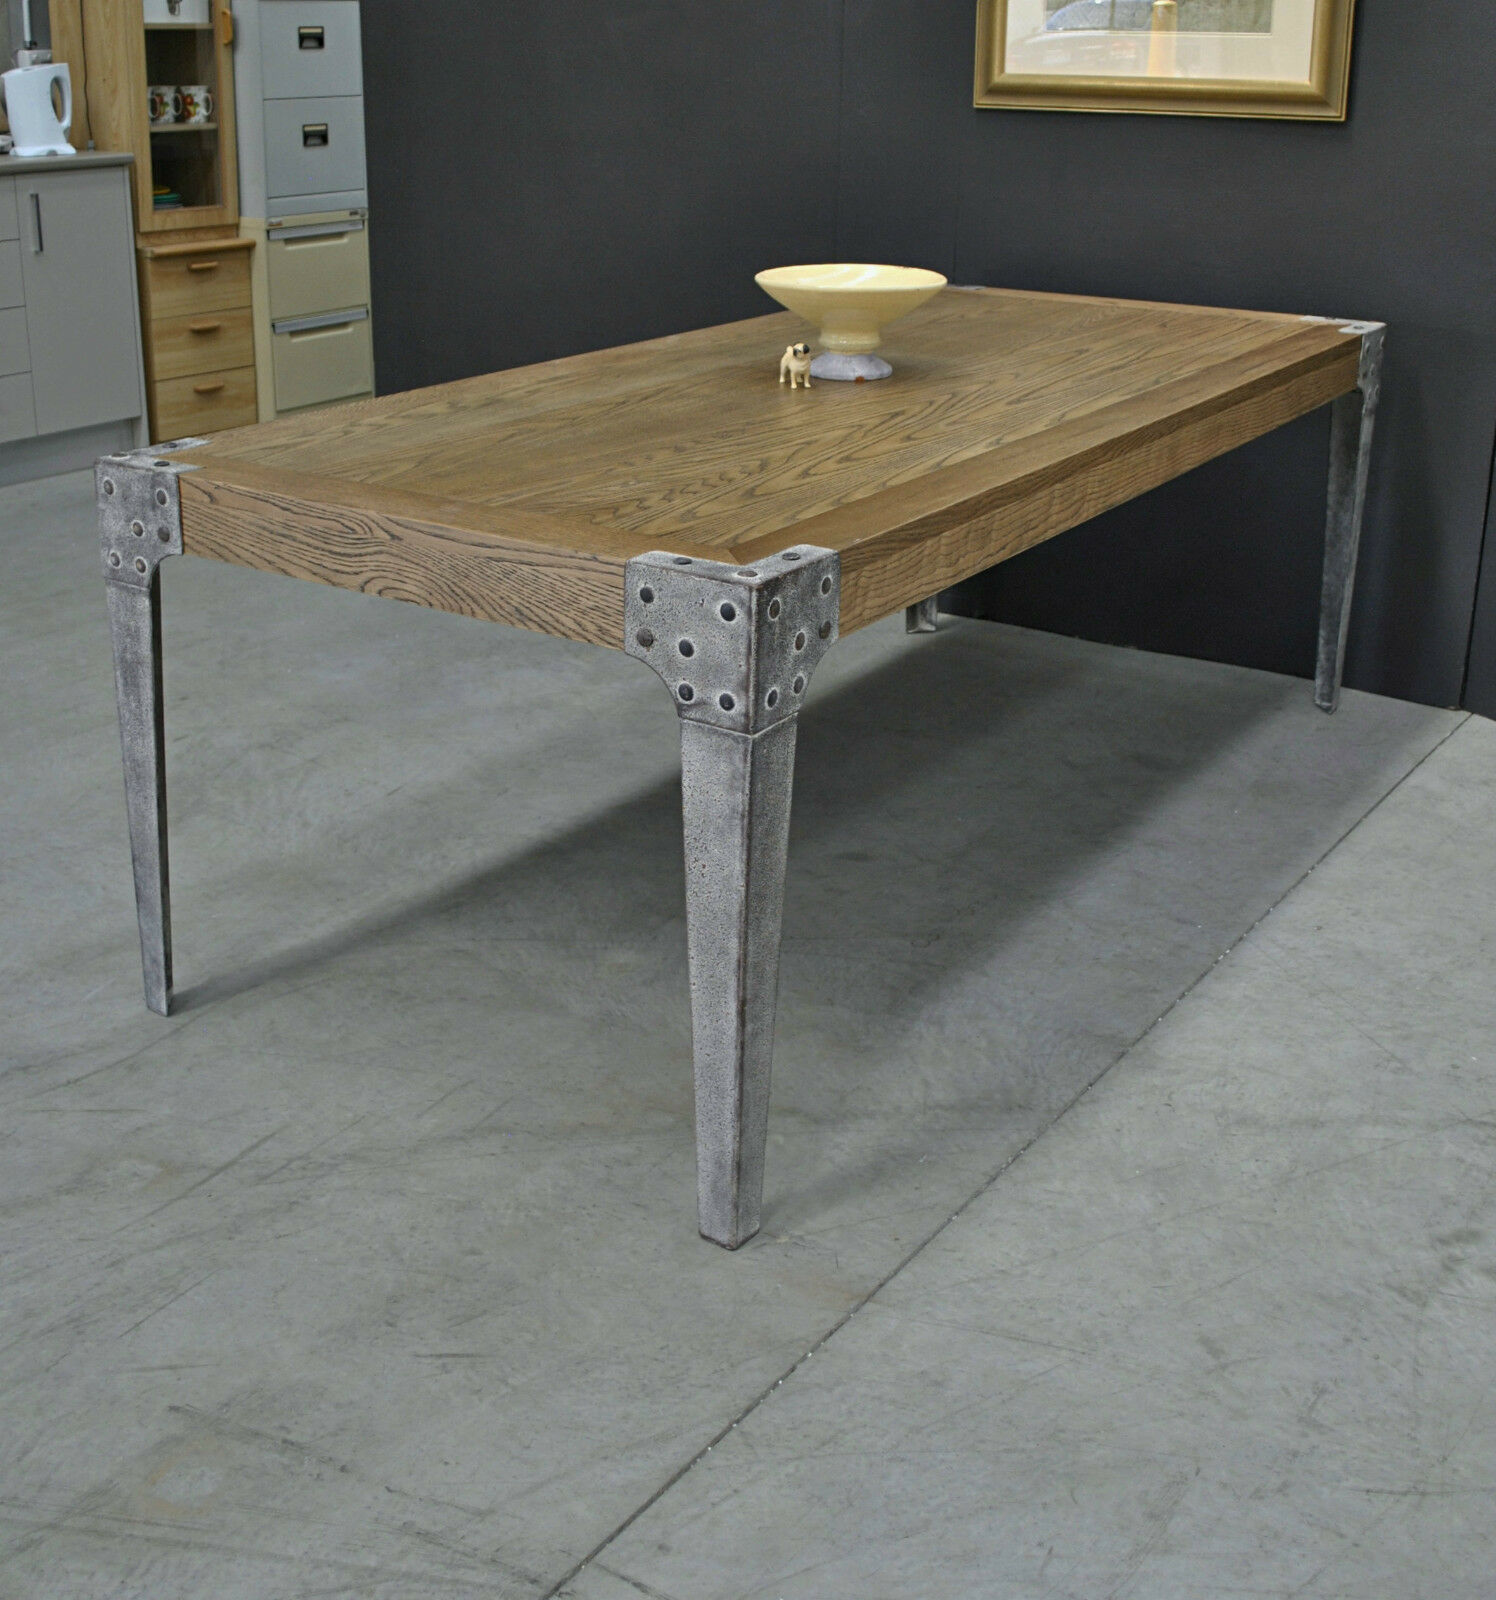 Large rustic modern industrial oak refectory dining table for Rustic iron table legs